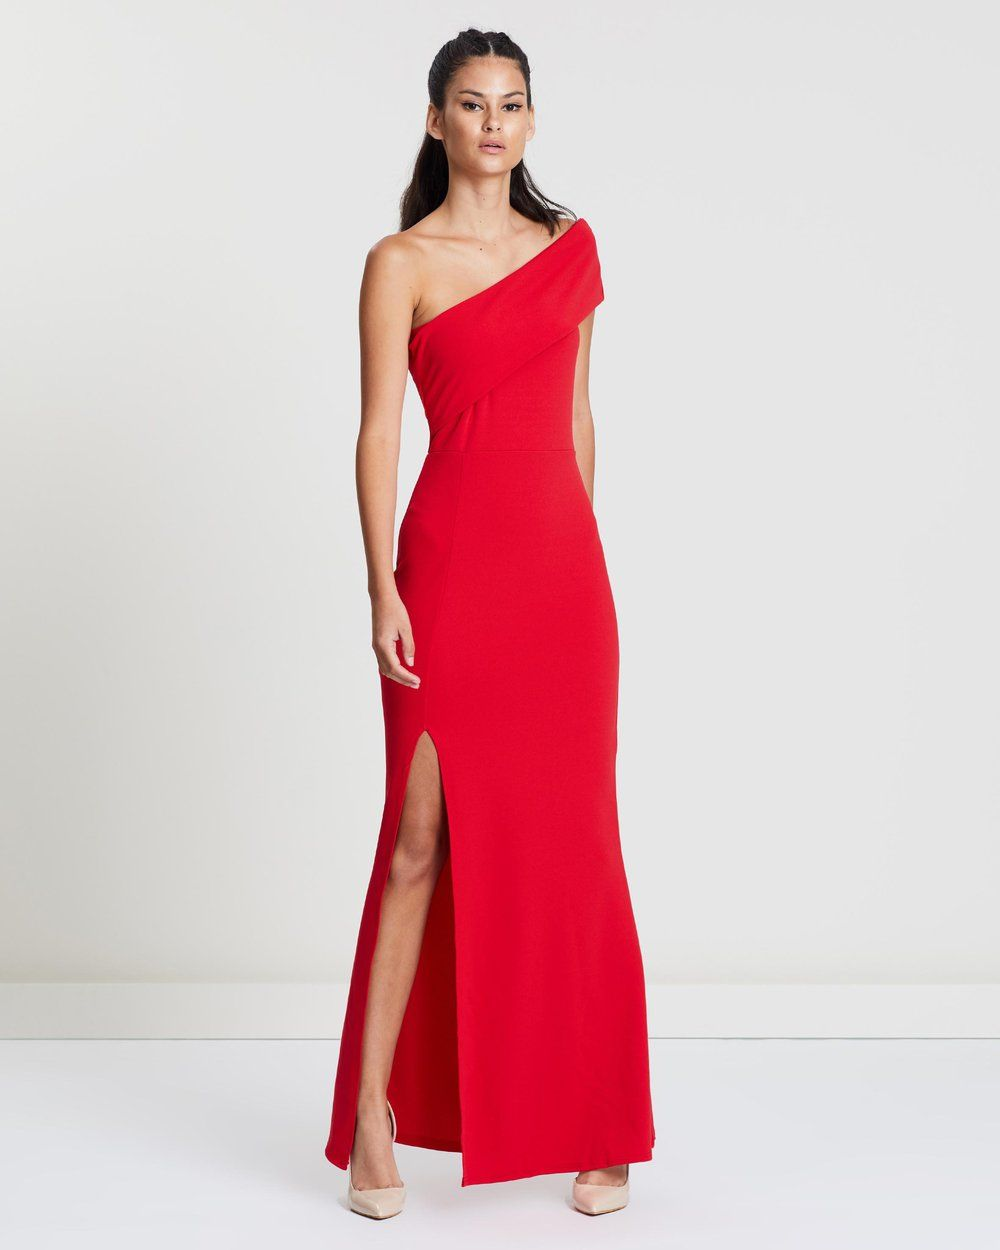 4200564c13a88b Buy One Shoulder Maxi Dress by Missguided online at THE ICONIC. Free and  fast delivery